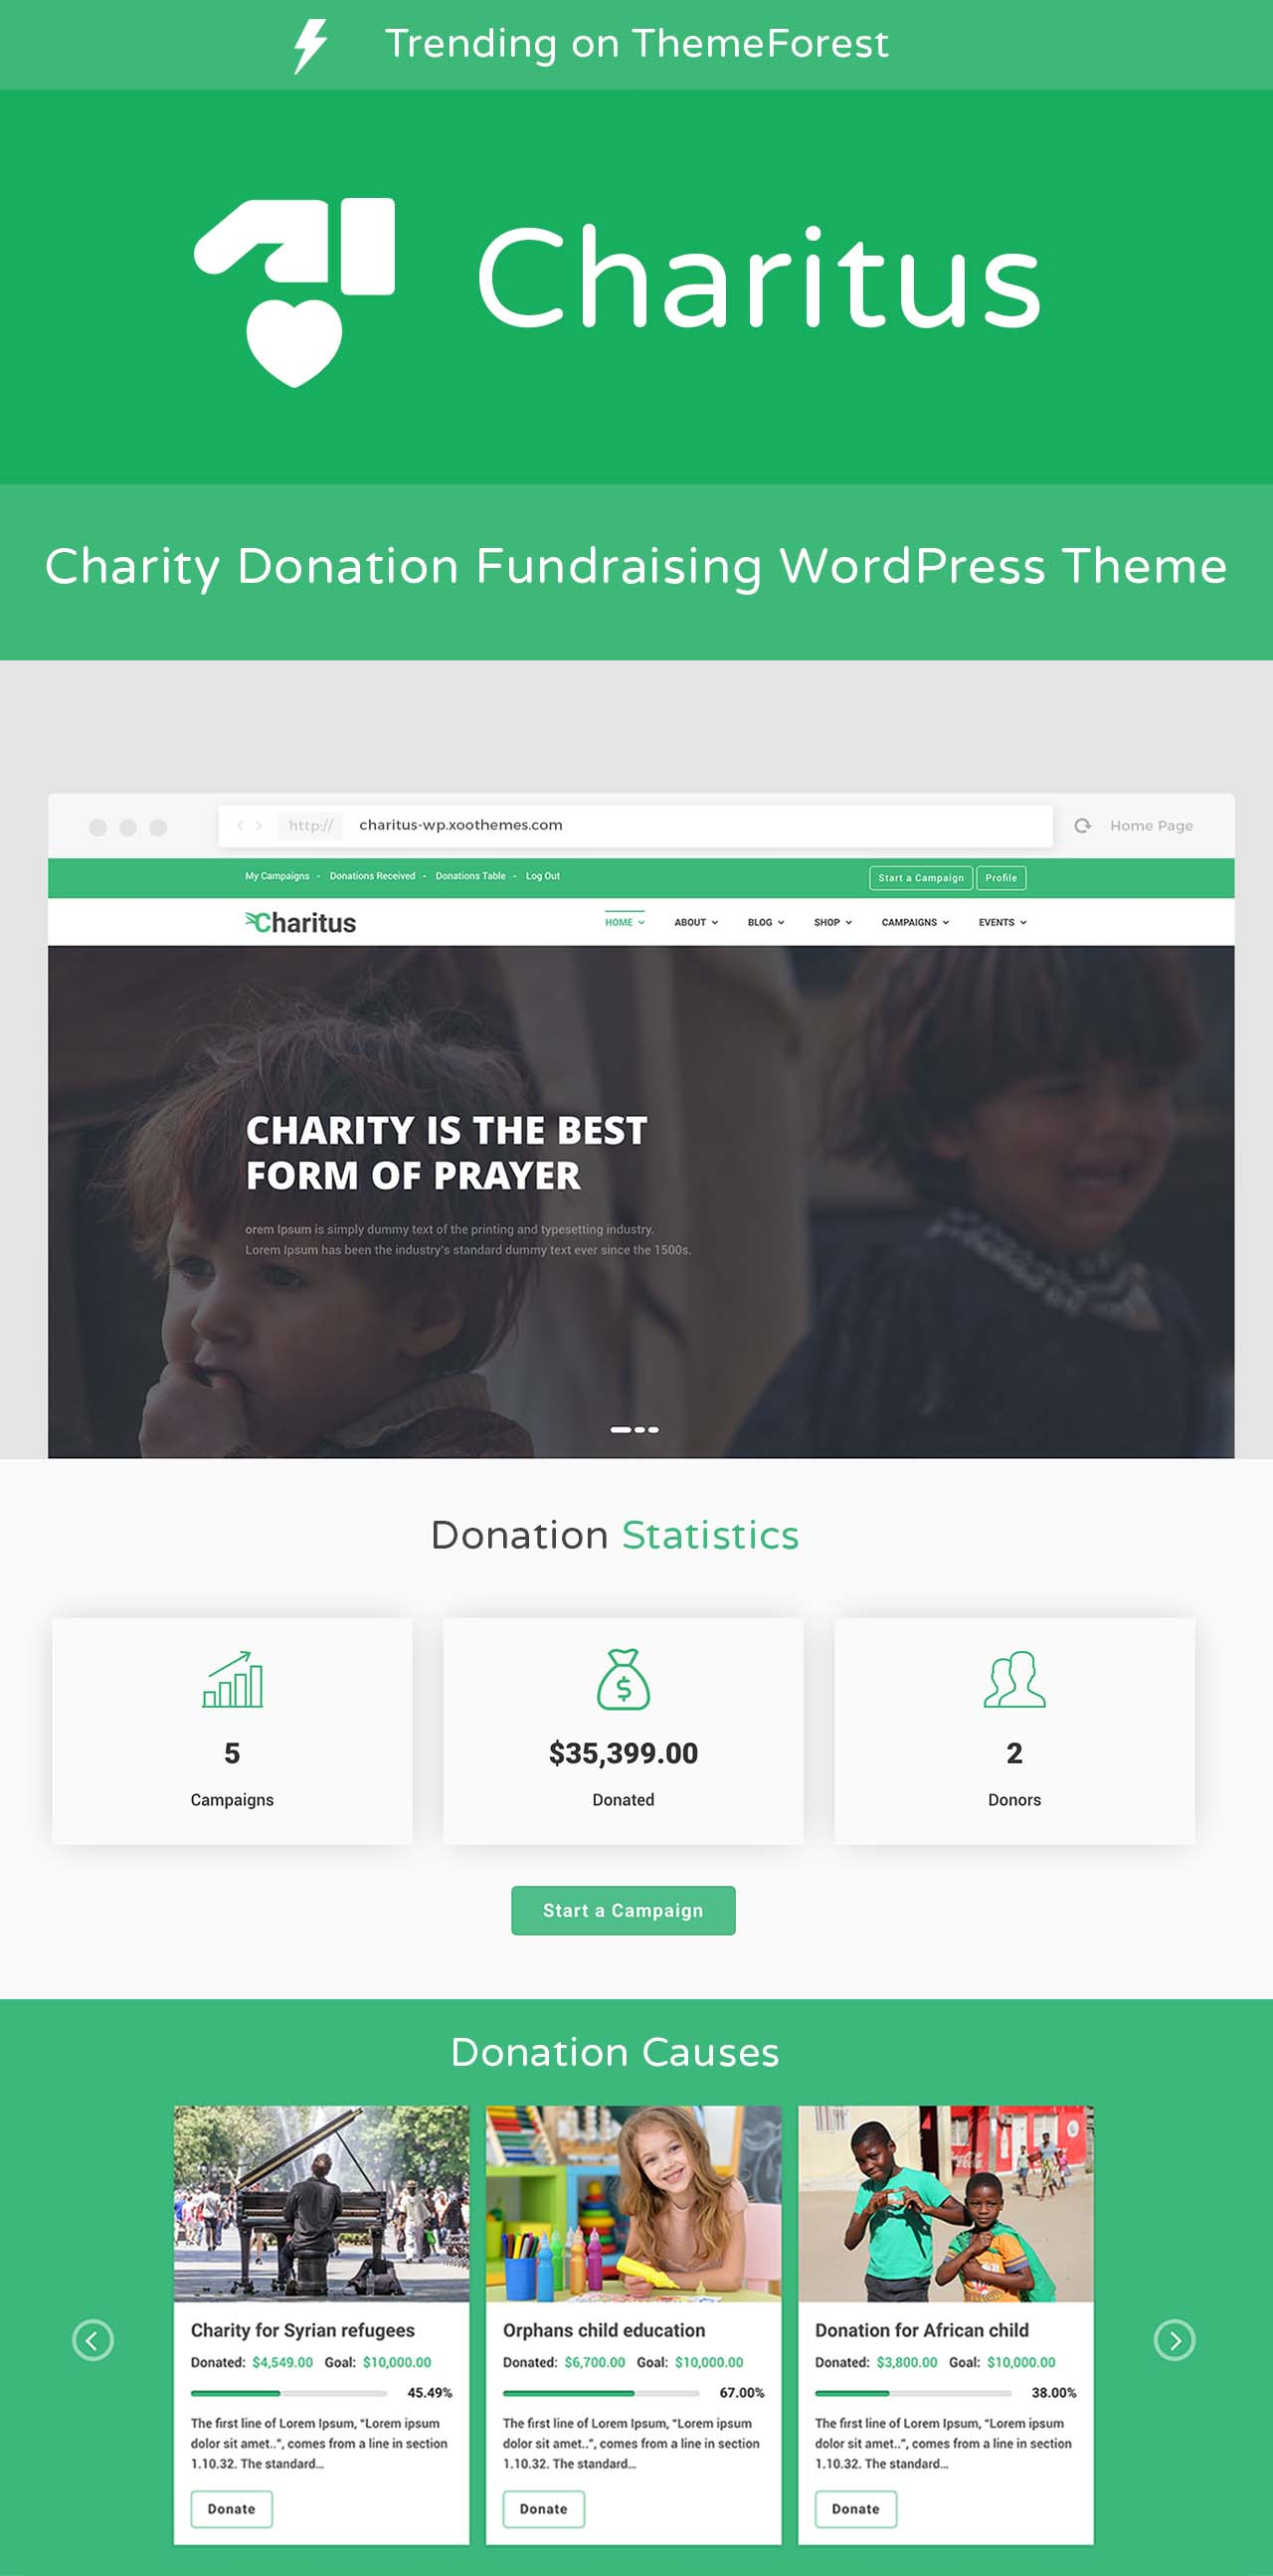 Charitus - Charity Donation Fundraising WordPress Theme